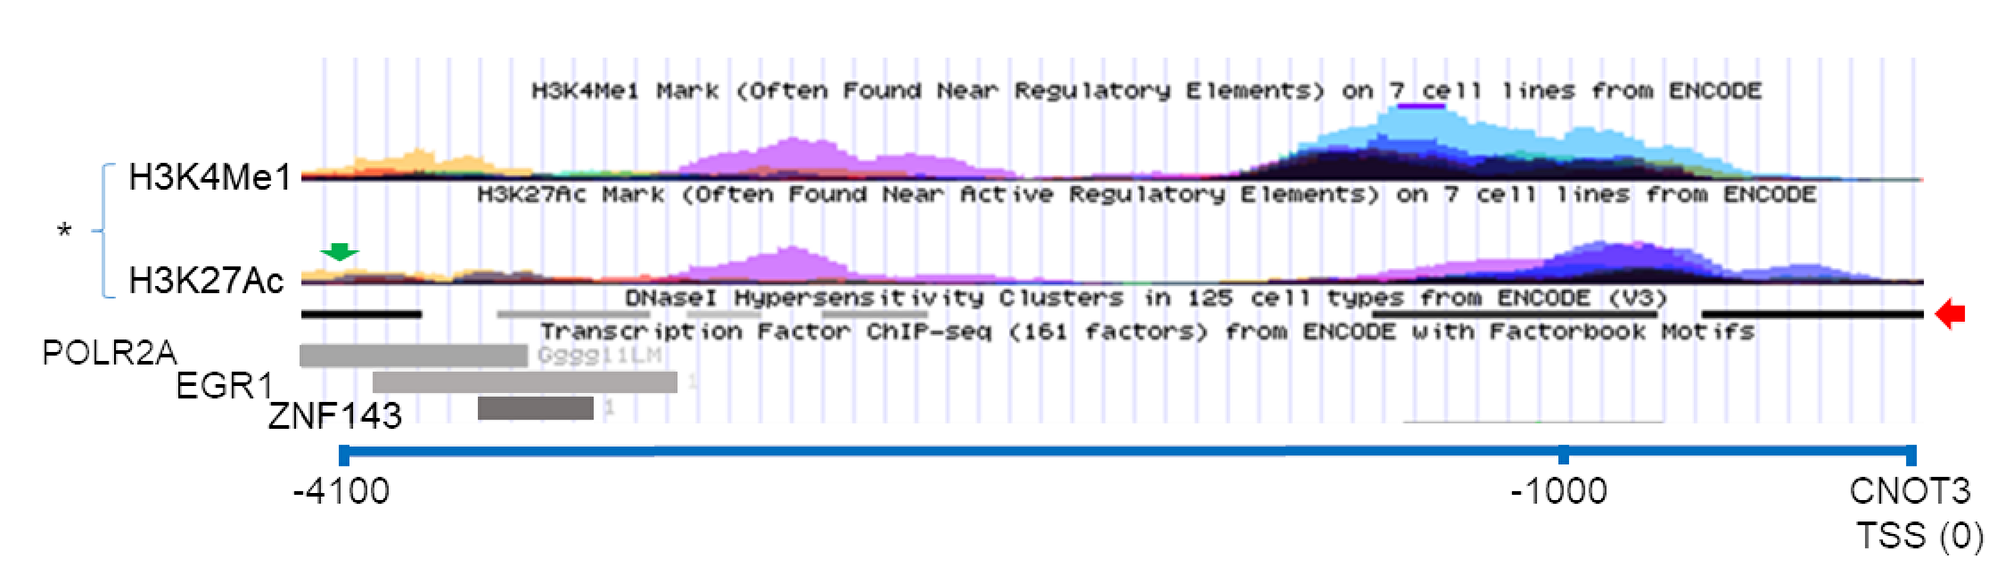 Possible CTBP1 binding site near the CNOT3 gene.